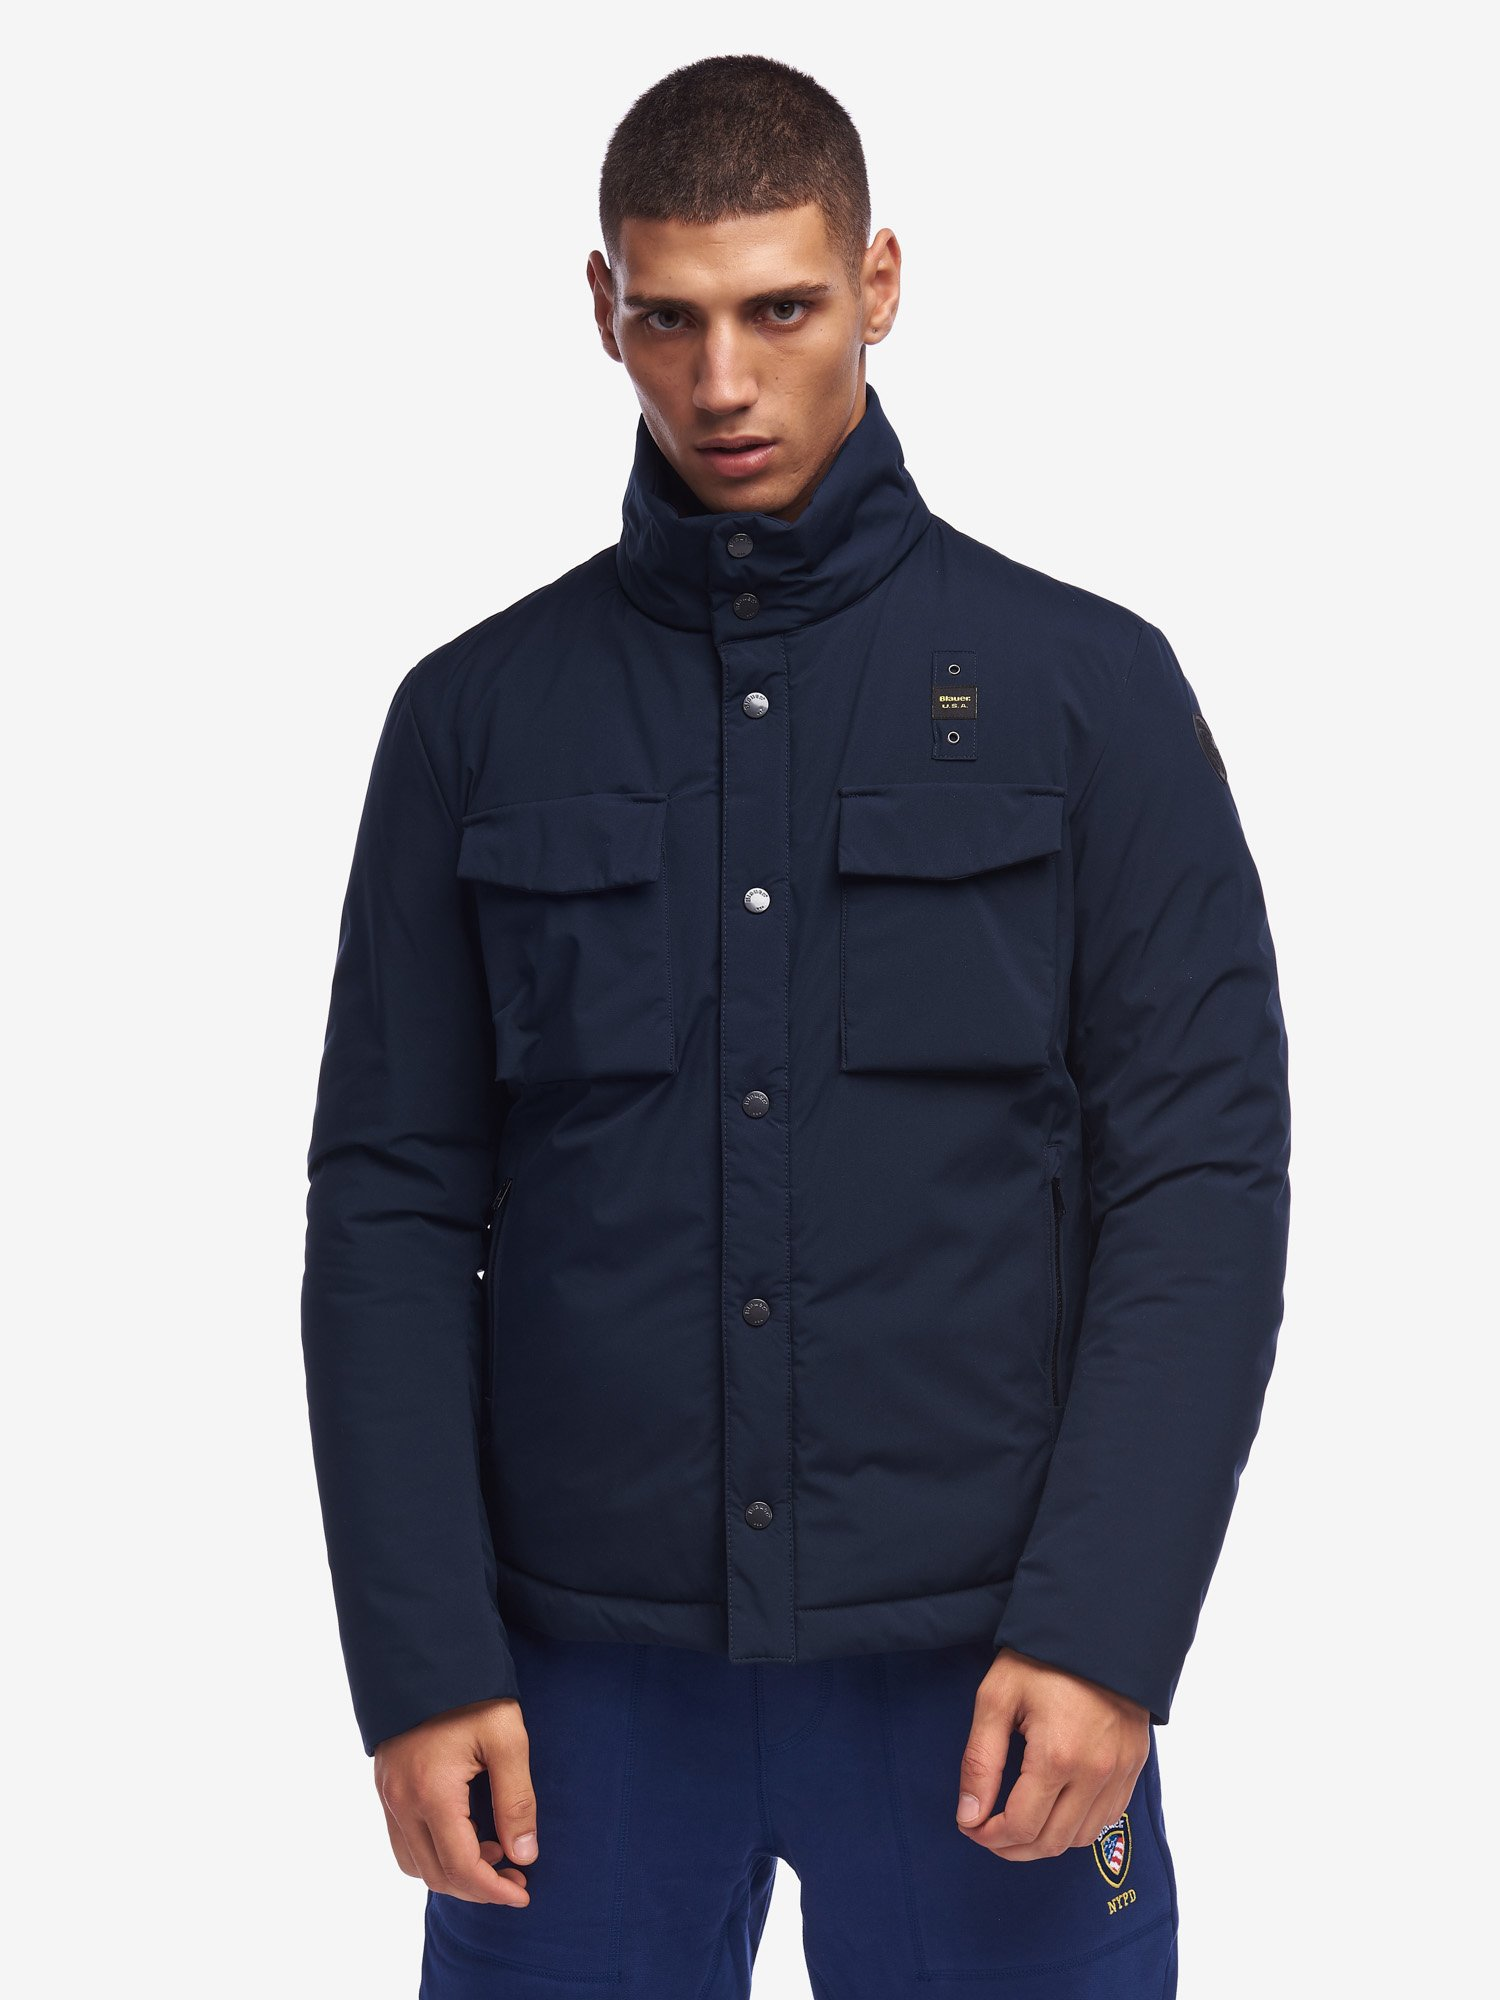 STEVENS FIELD JACKET WITH ECO PADDING - Blauer